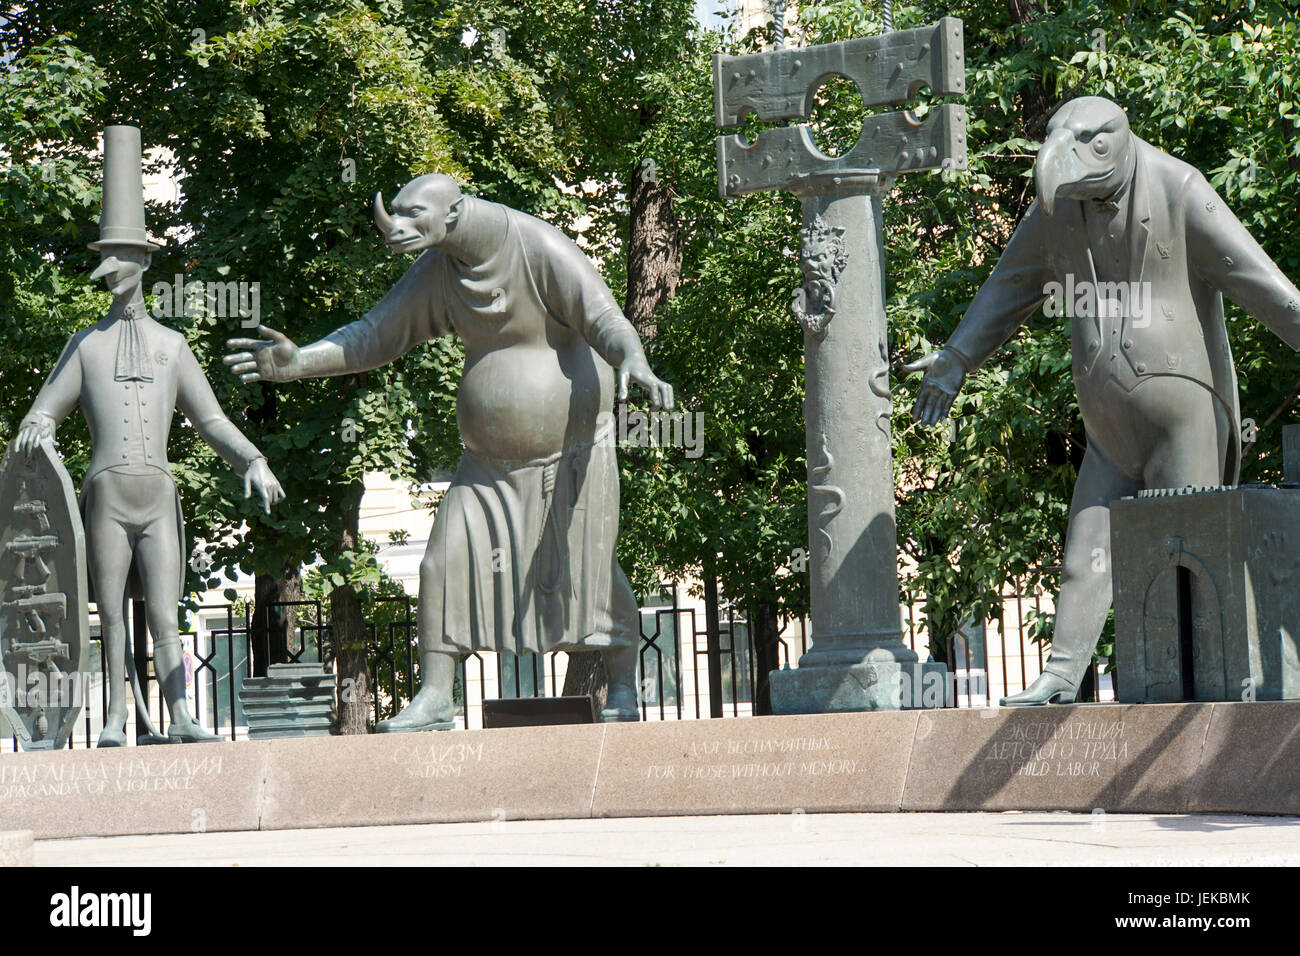 Children Are the Victims of Adult Vices, a series of sculptures by Mihail Chemiakin in Bolotnaya Square, Balchug, - Stock Image